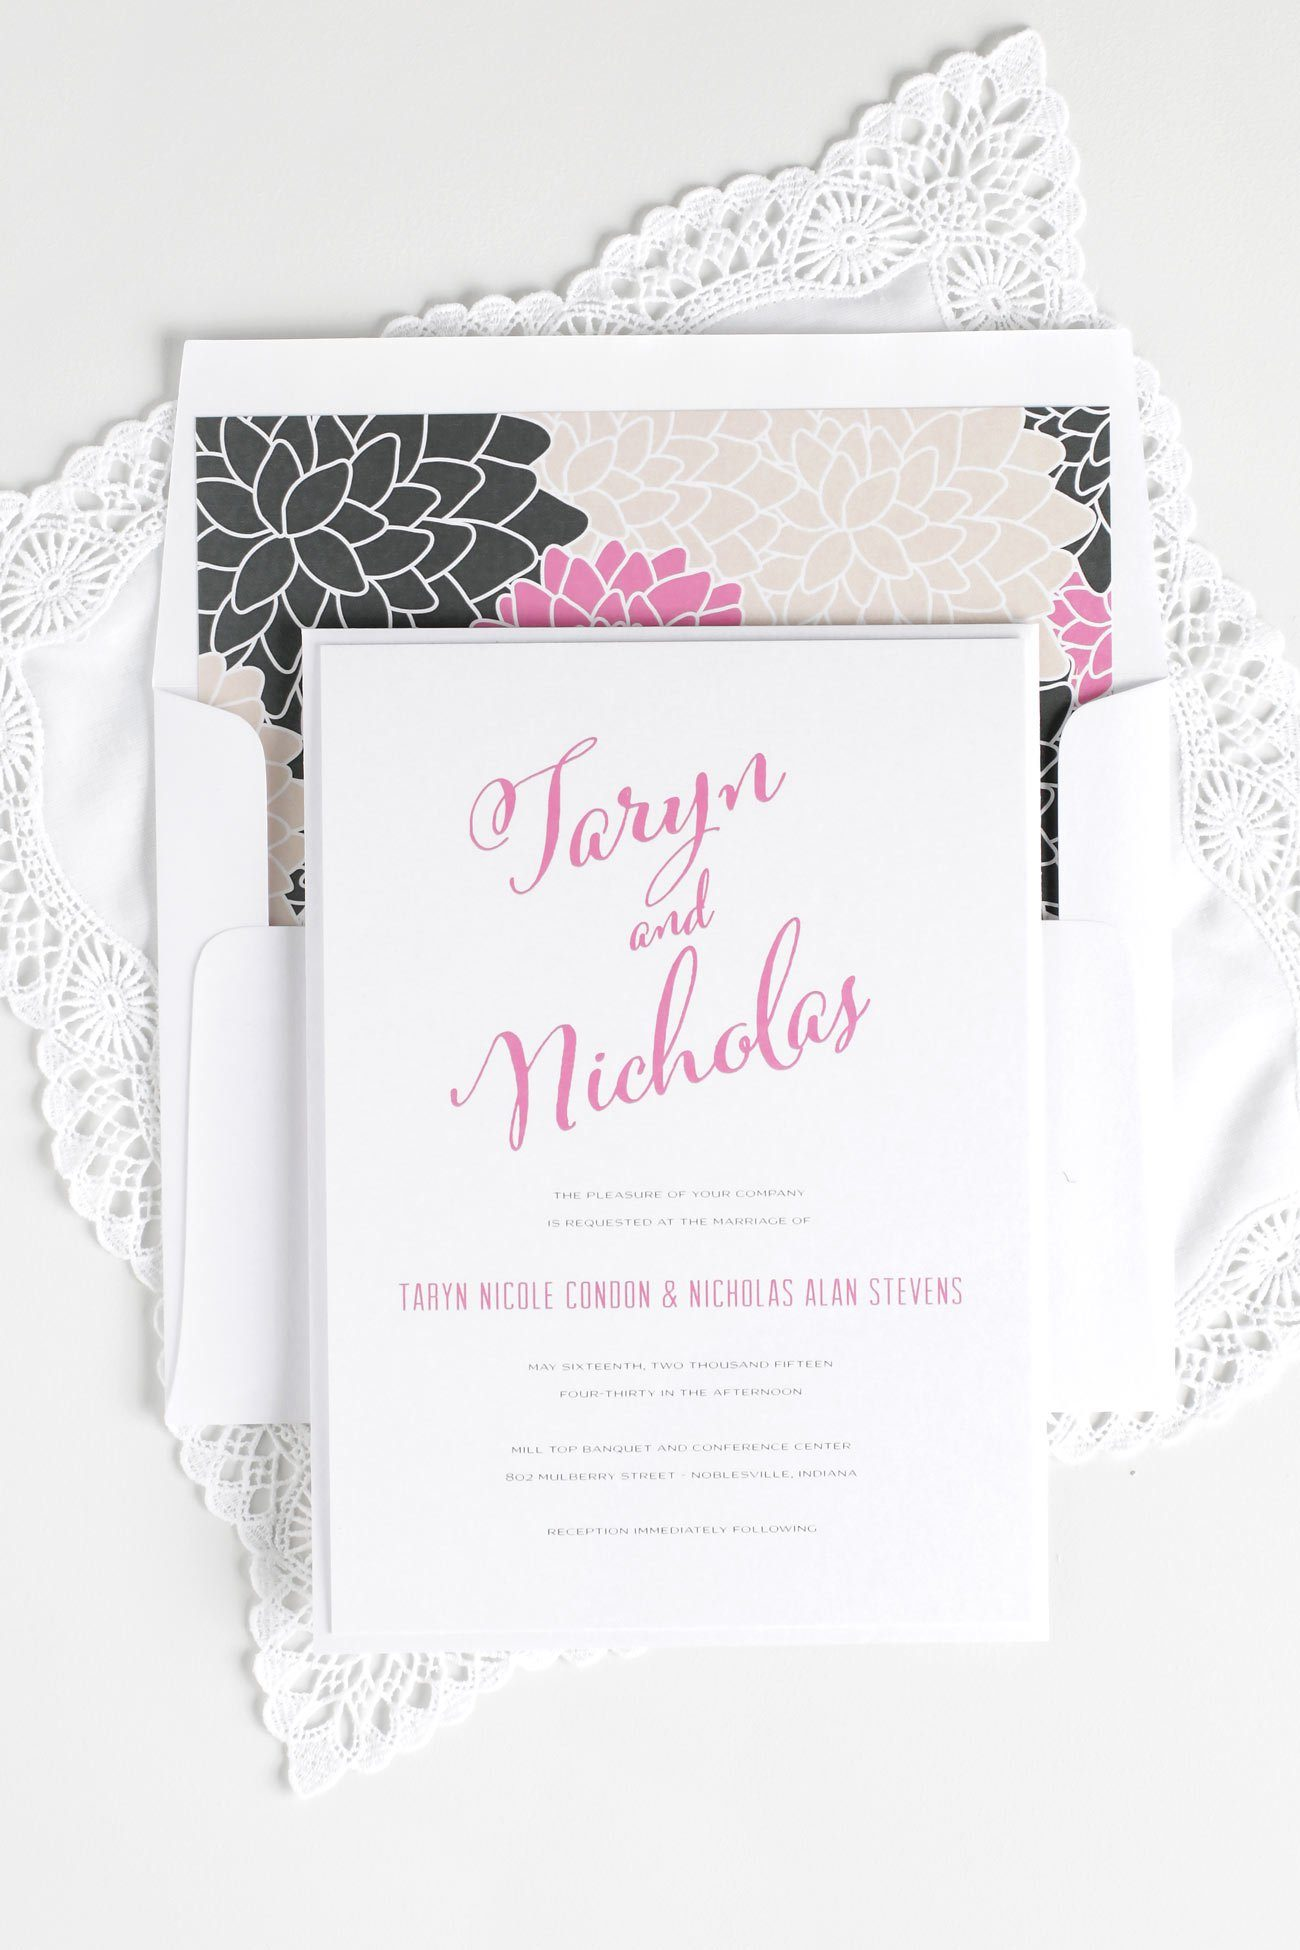 Calligraphy wedding invitations in pink and gray